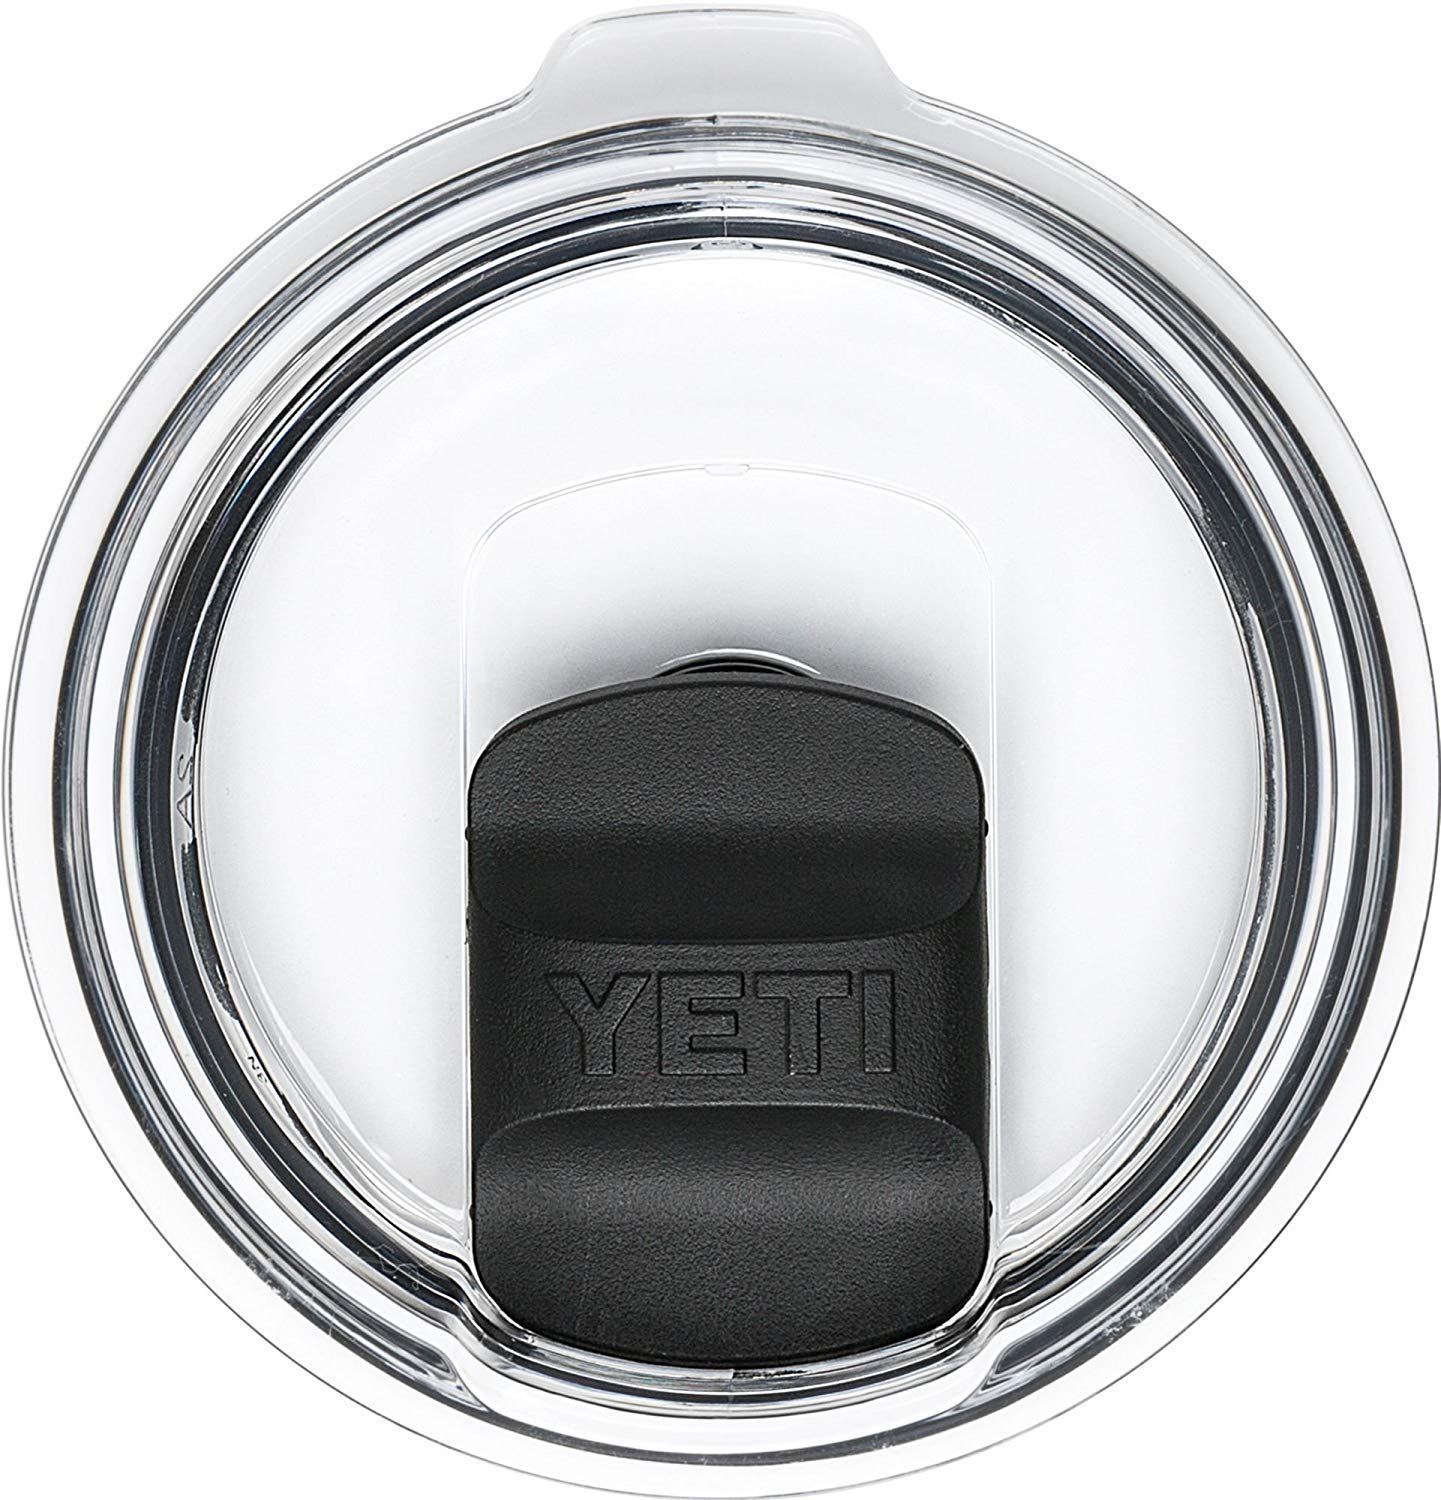 Magnetic Lid 30 oz Splash Proof - NO LEAK & Splash resistant Vacuum Replacement Black Magnetic Lid Fits for YETI Rambler, Ozark Trail, Old Style Rtic and More (Black)